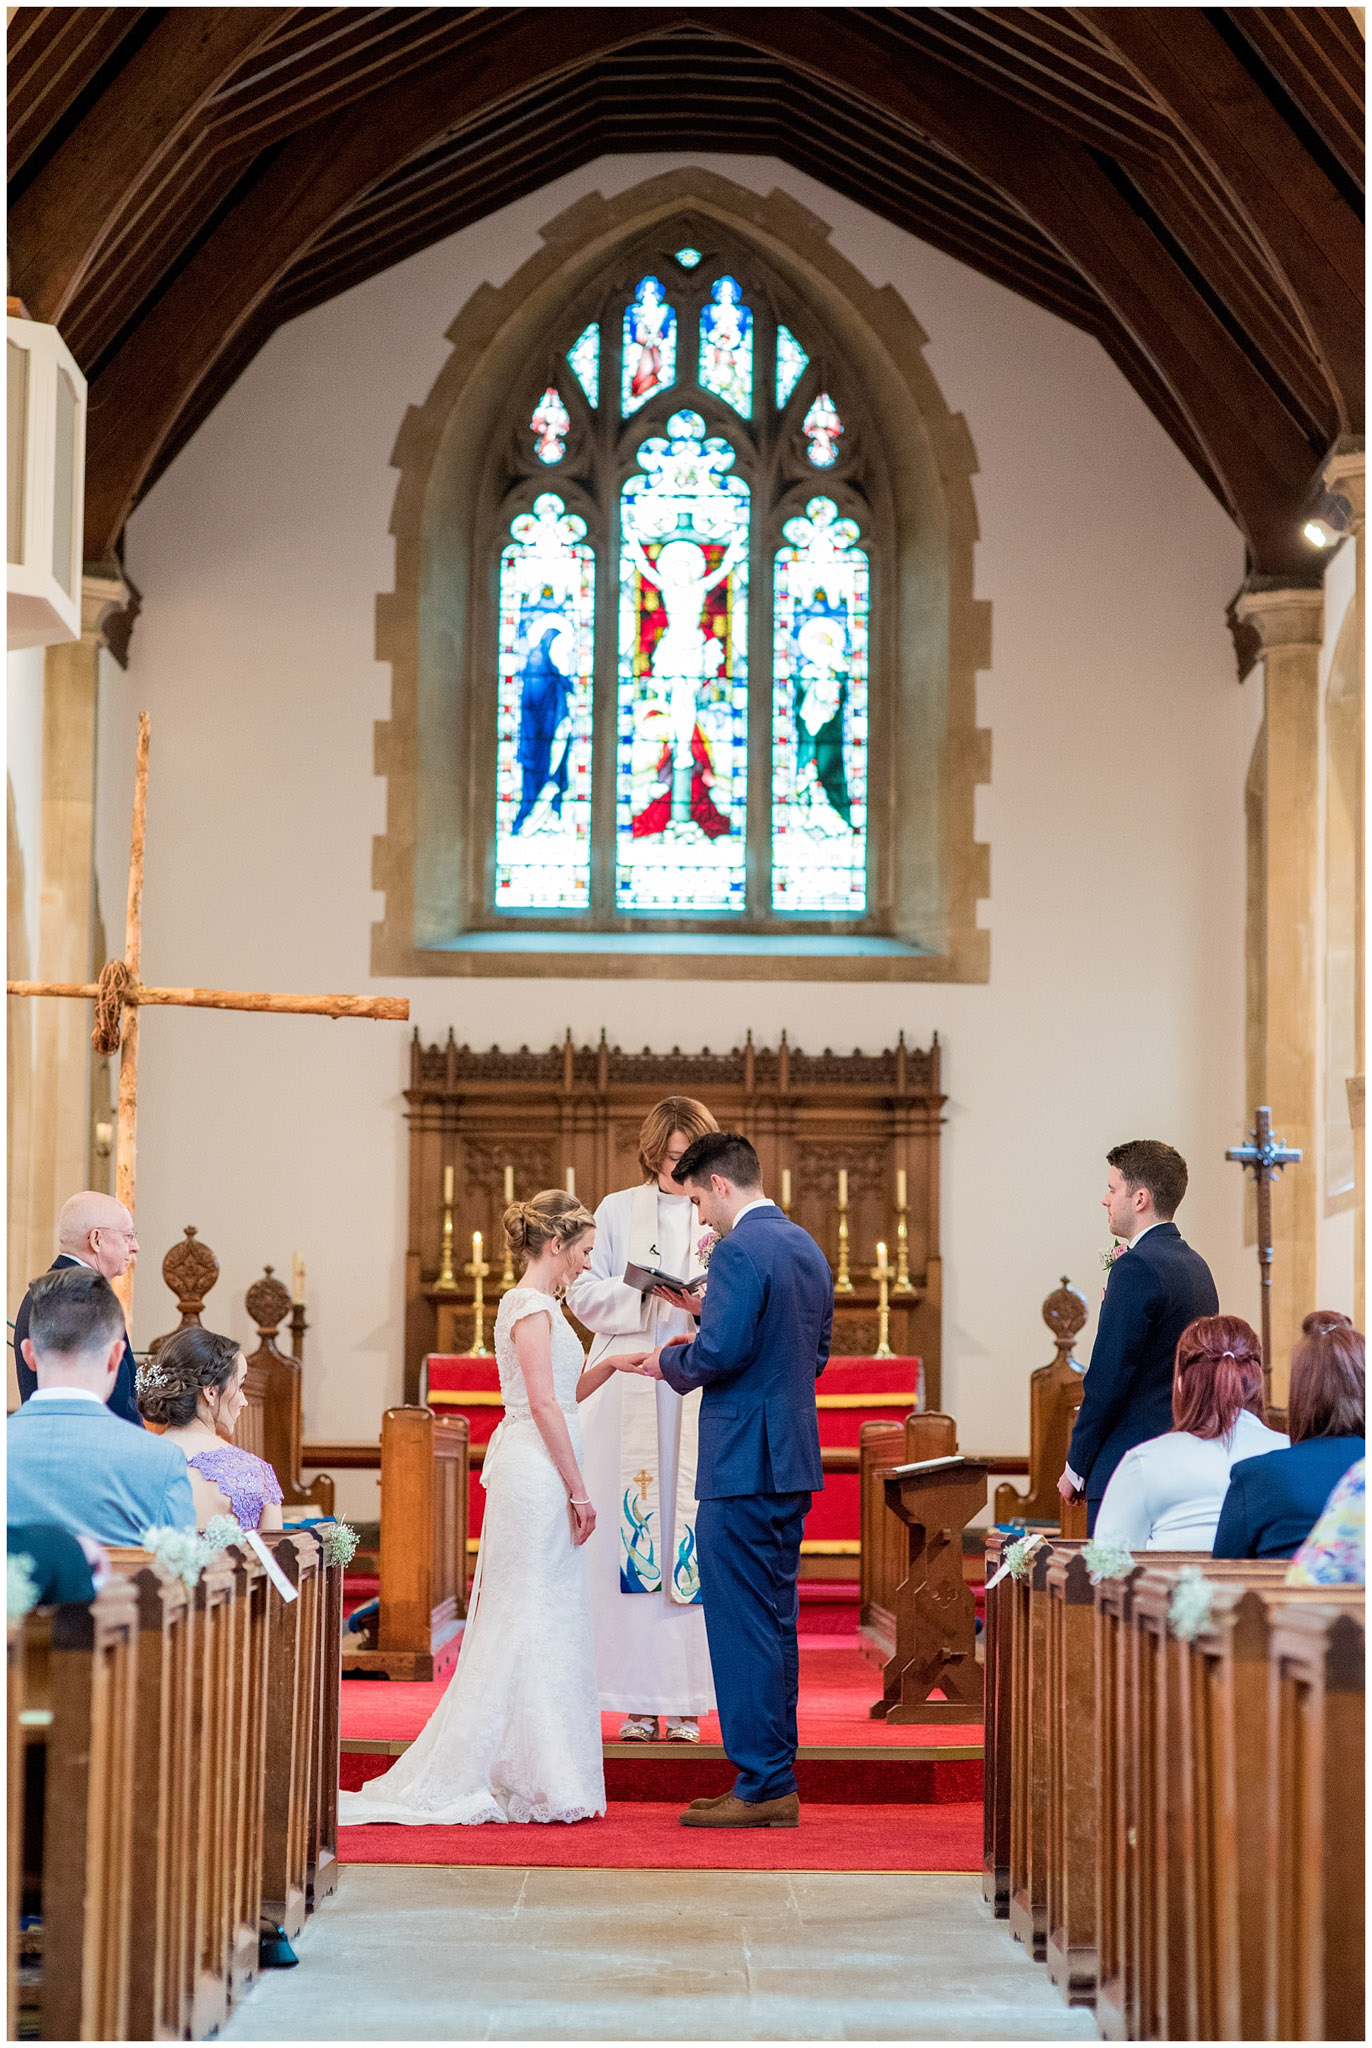 shot from the back of church bride and groom exchanging wedding rings